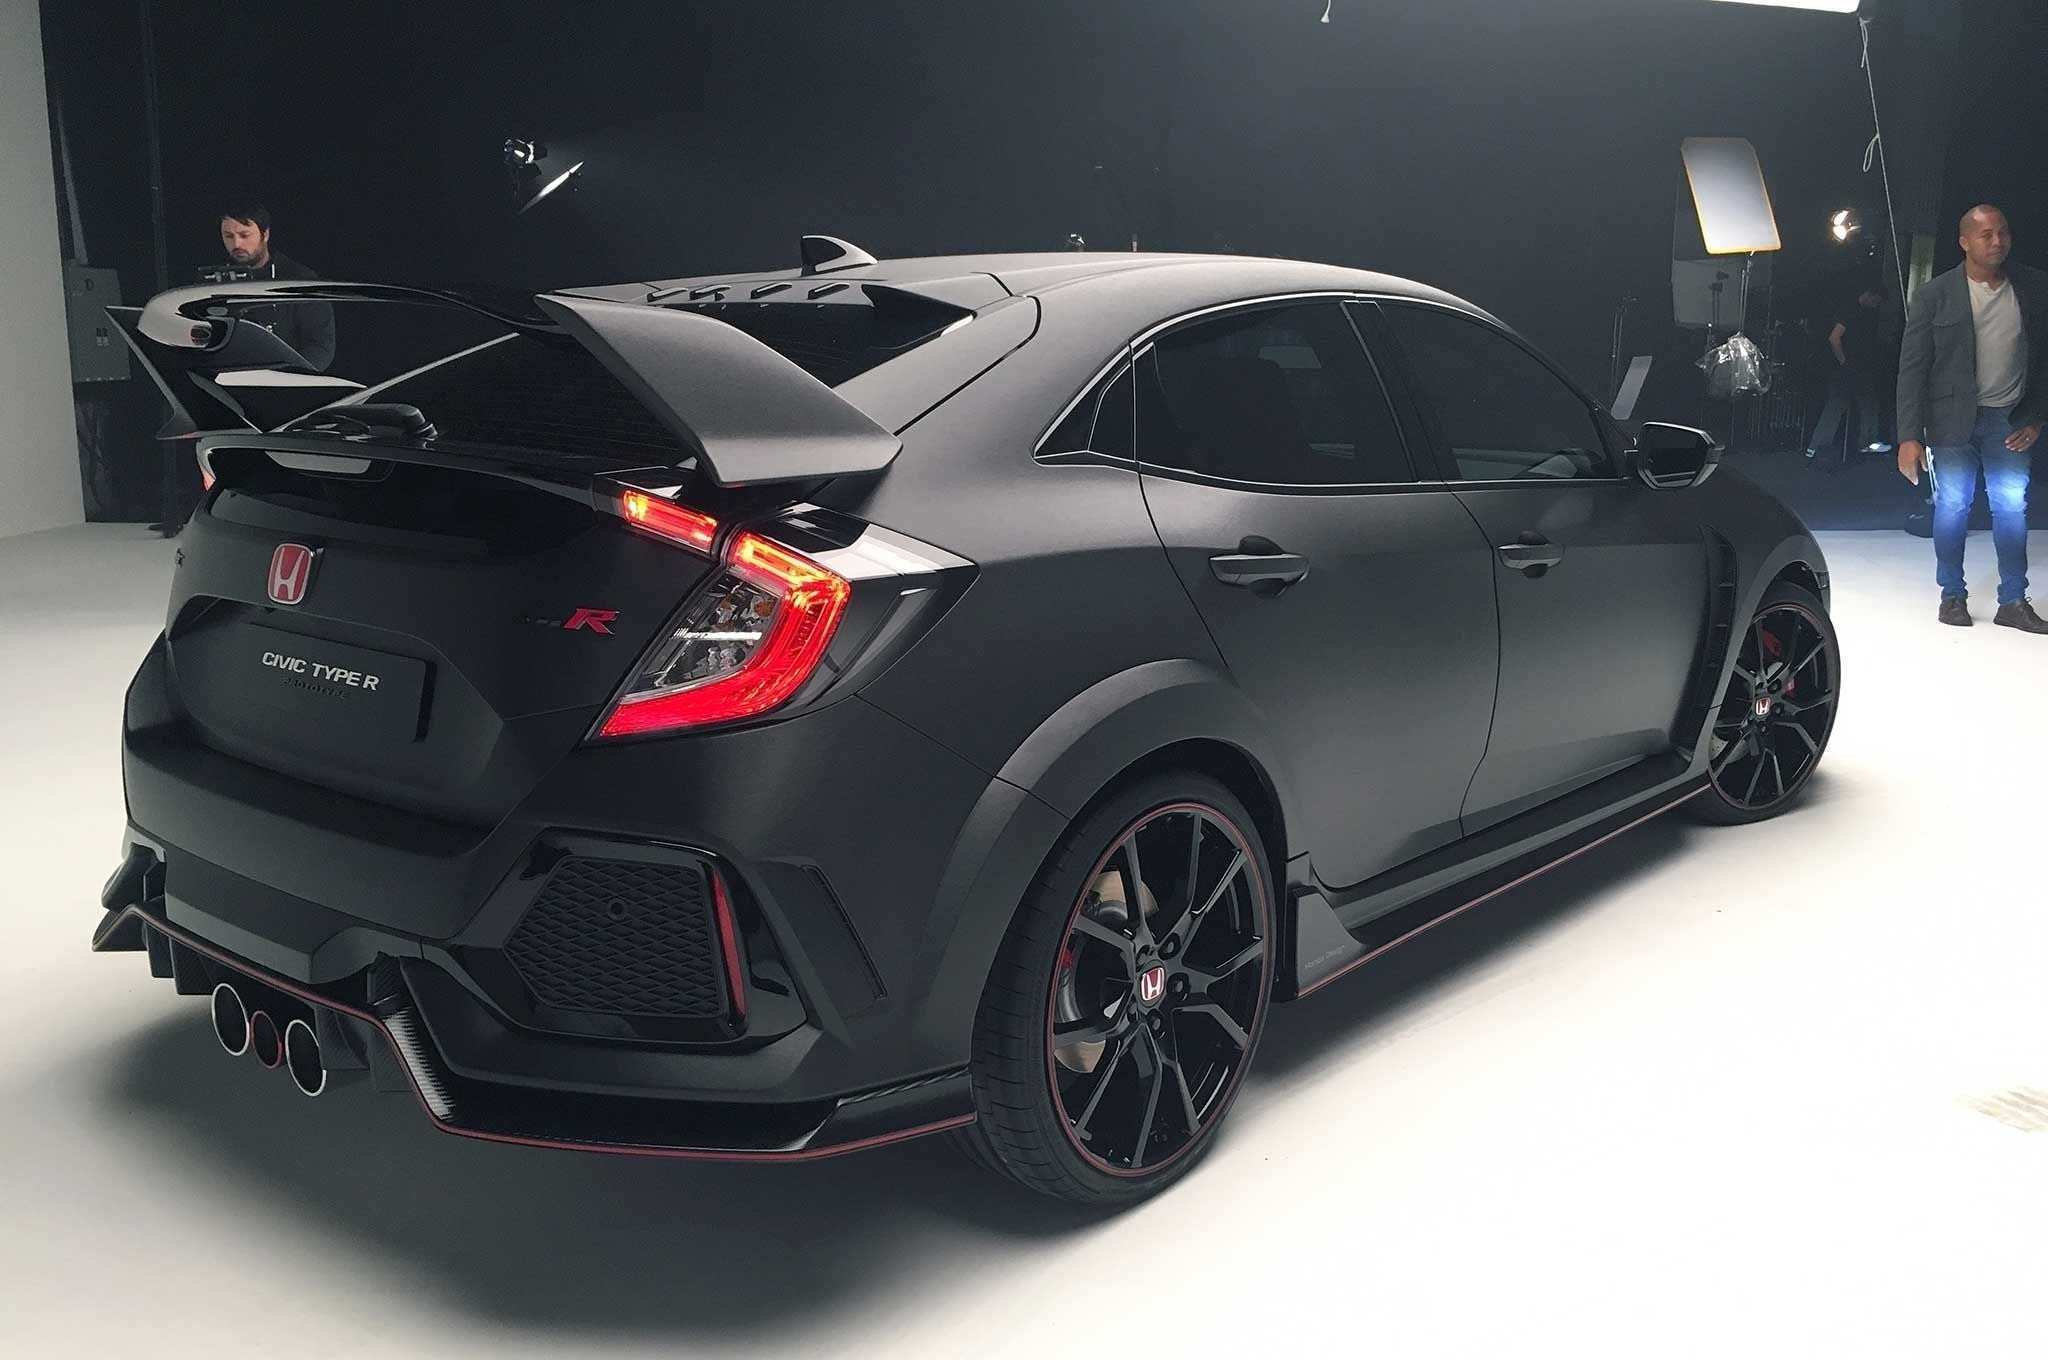 59 All New New Honda Type R 2019 Release Date Review And Release Date Price by New Honda Type R 2019 Release Date Review And Release Date